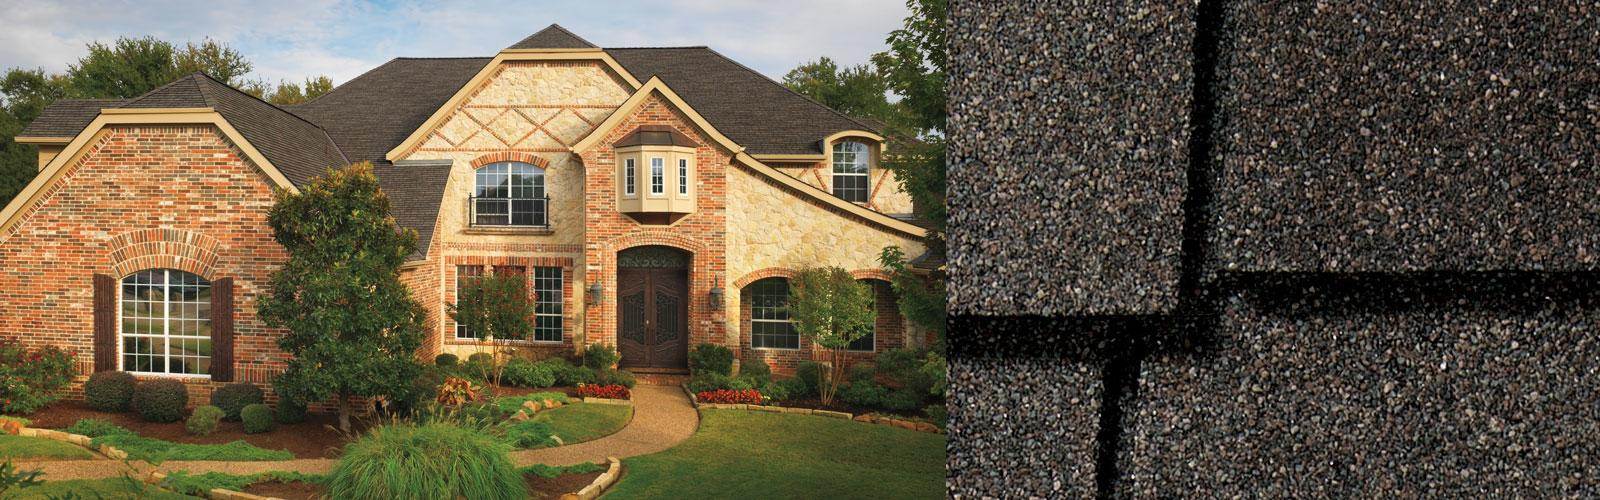 Campbell's Precision Roofing Images